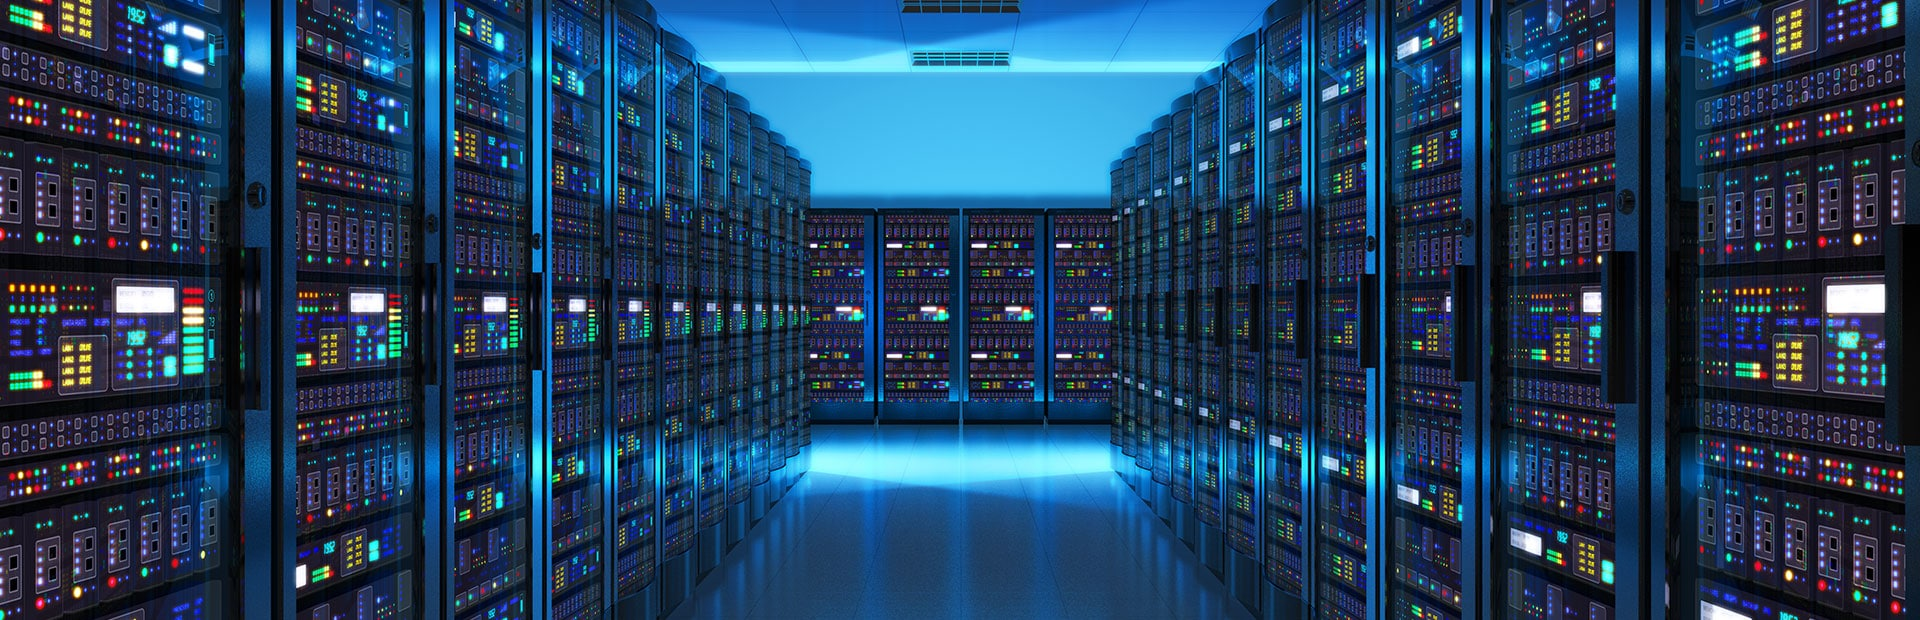 Big Data Management Servers